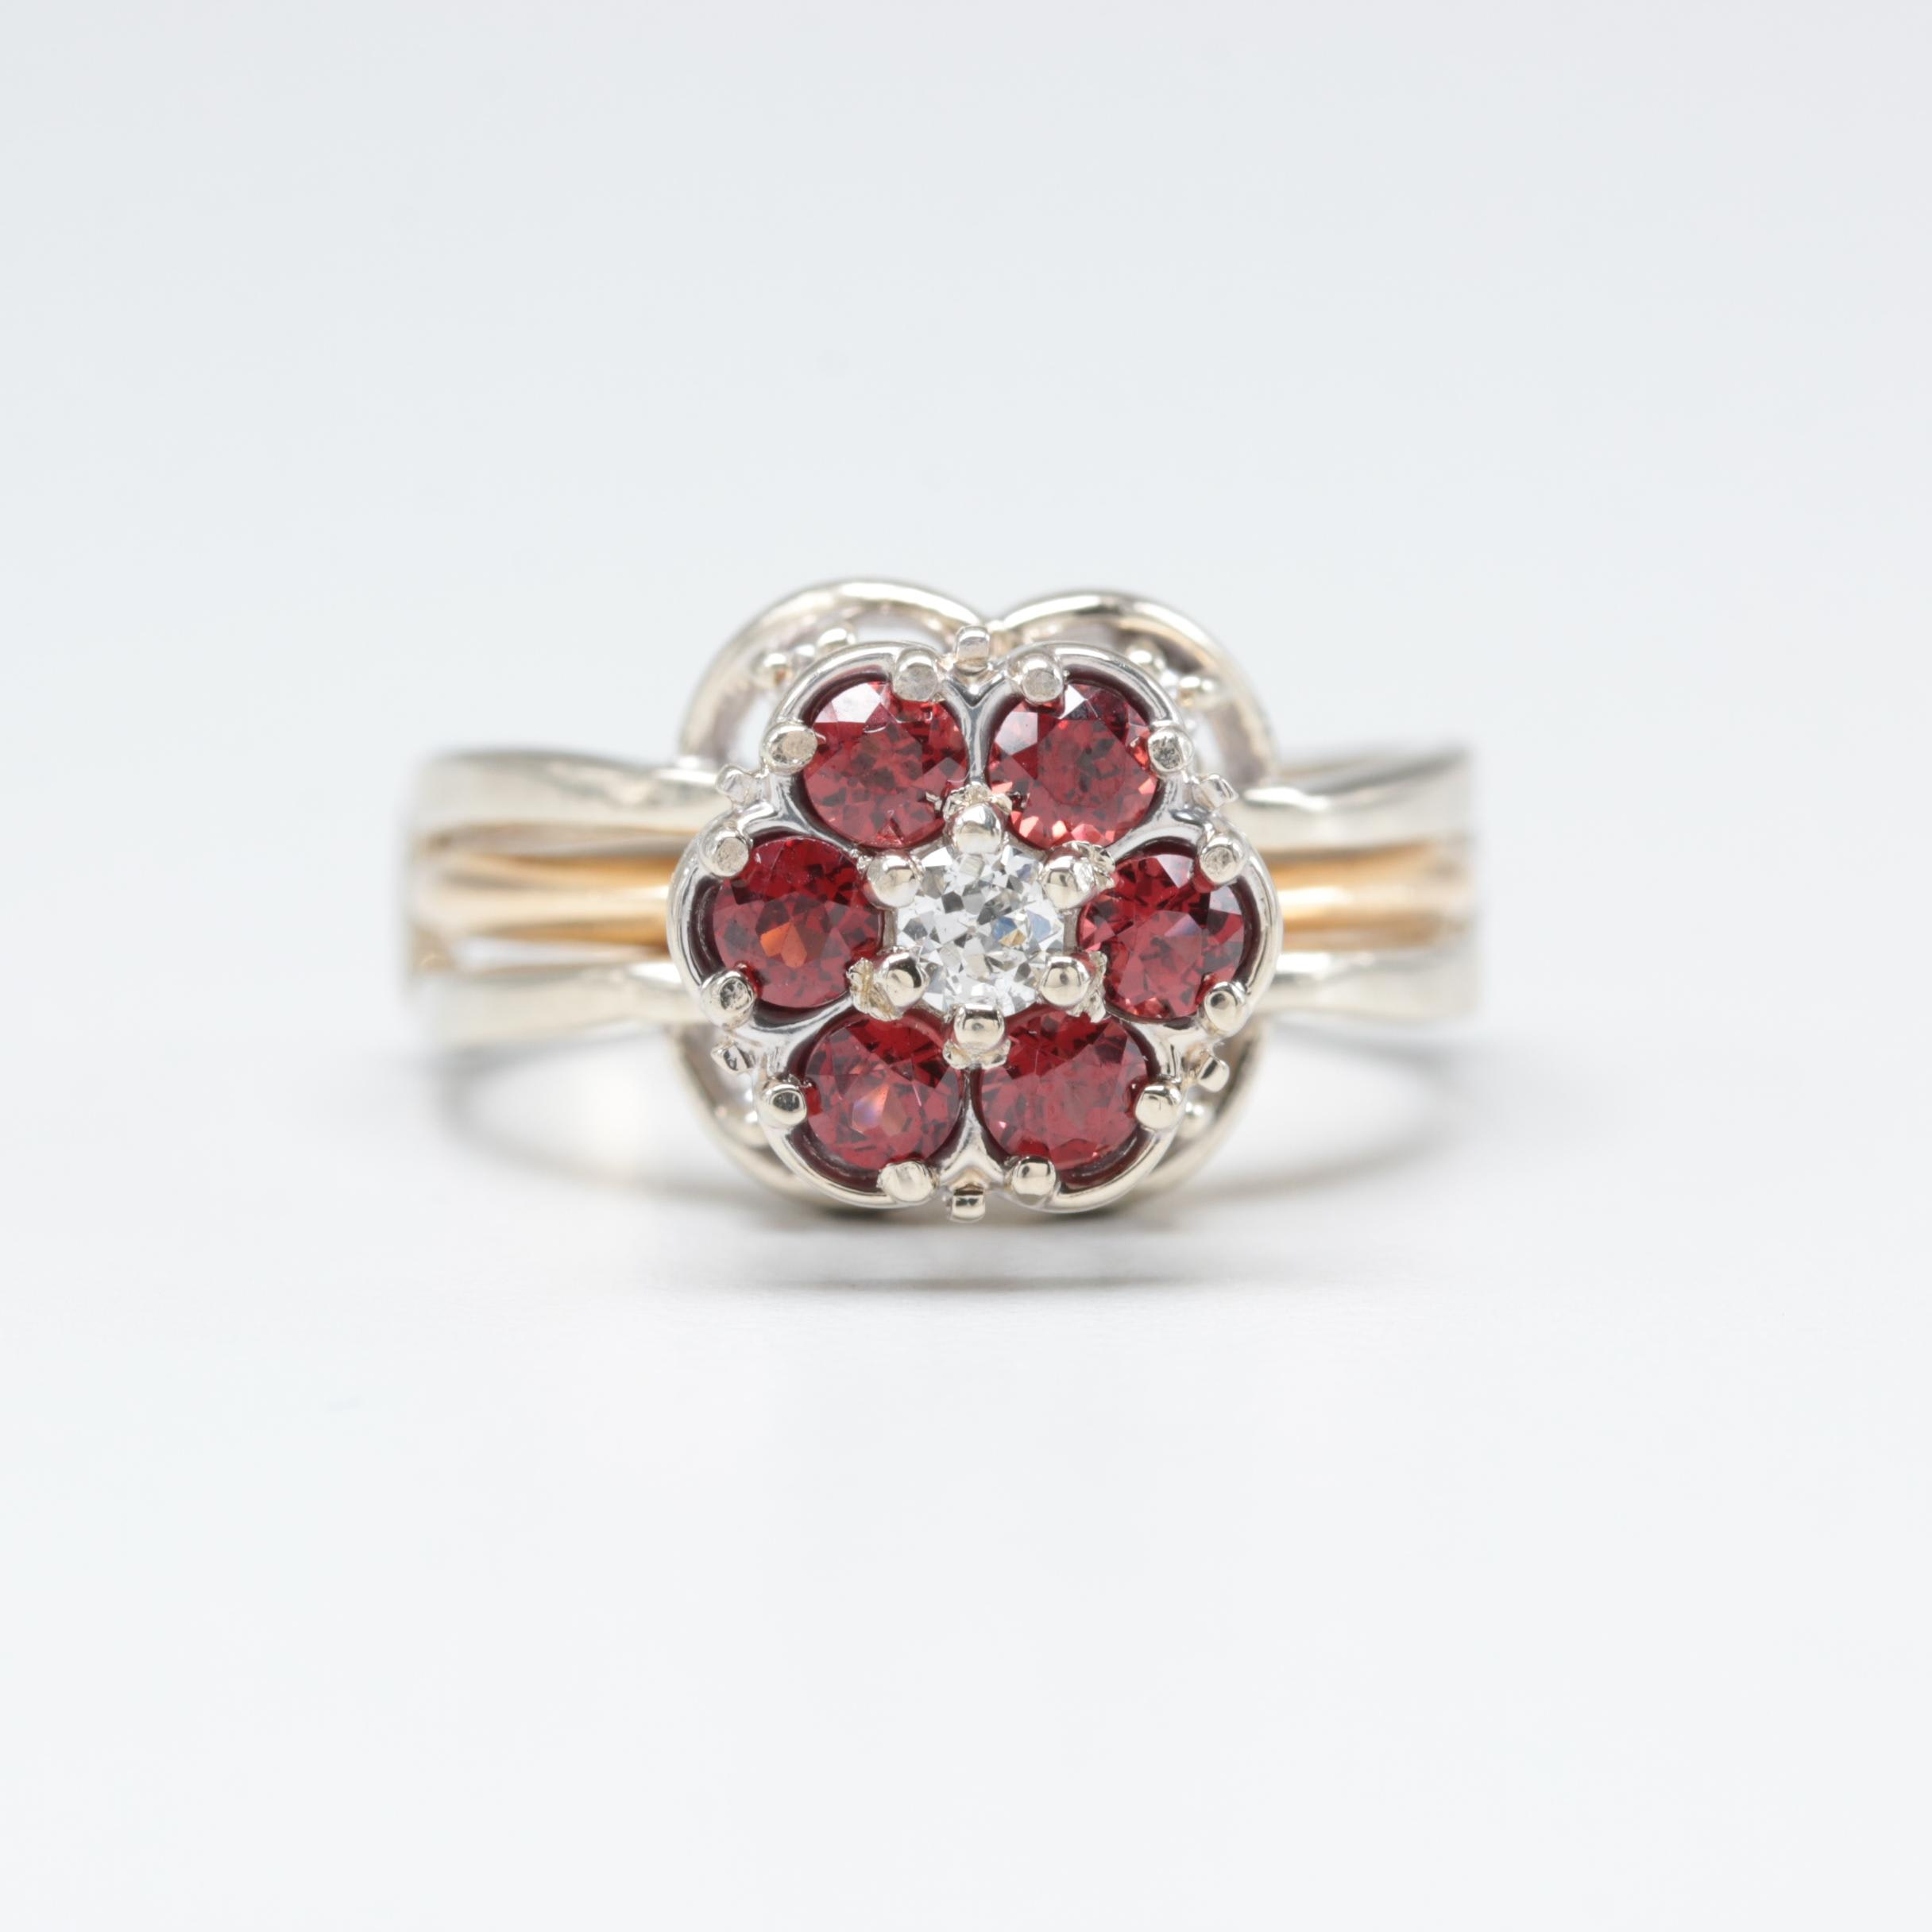 14K White and Yellow Gold Diamond and Garnet Ring Set